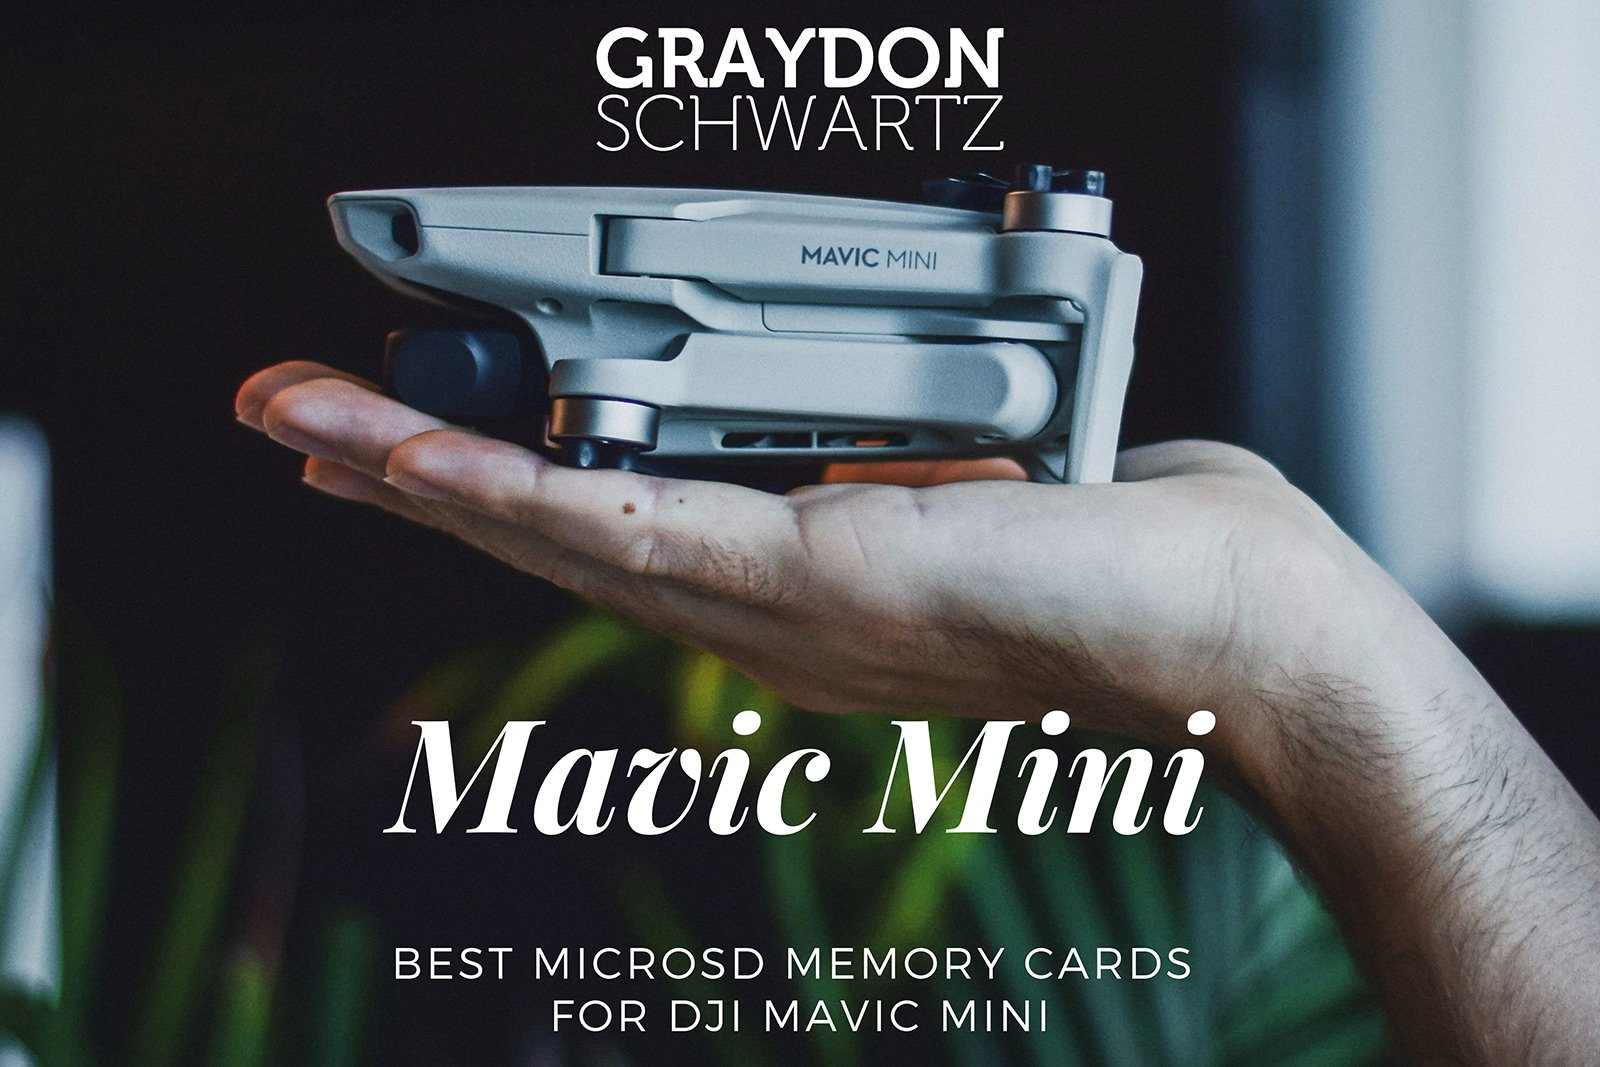 Best MicroSD Memory Cards for DJI Mavic Mini